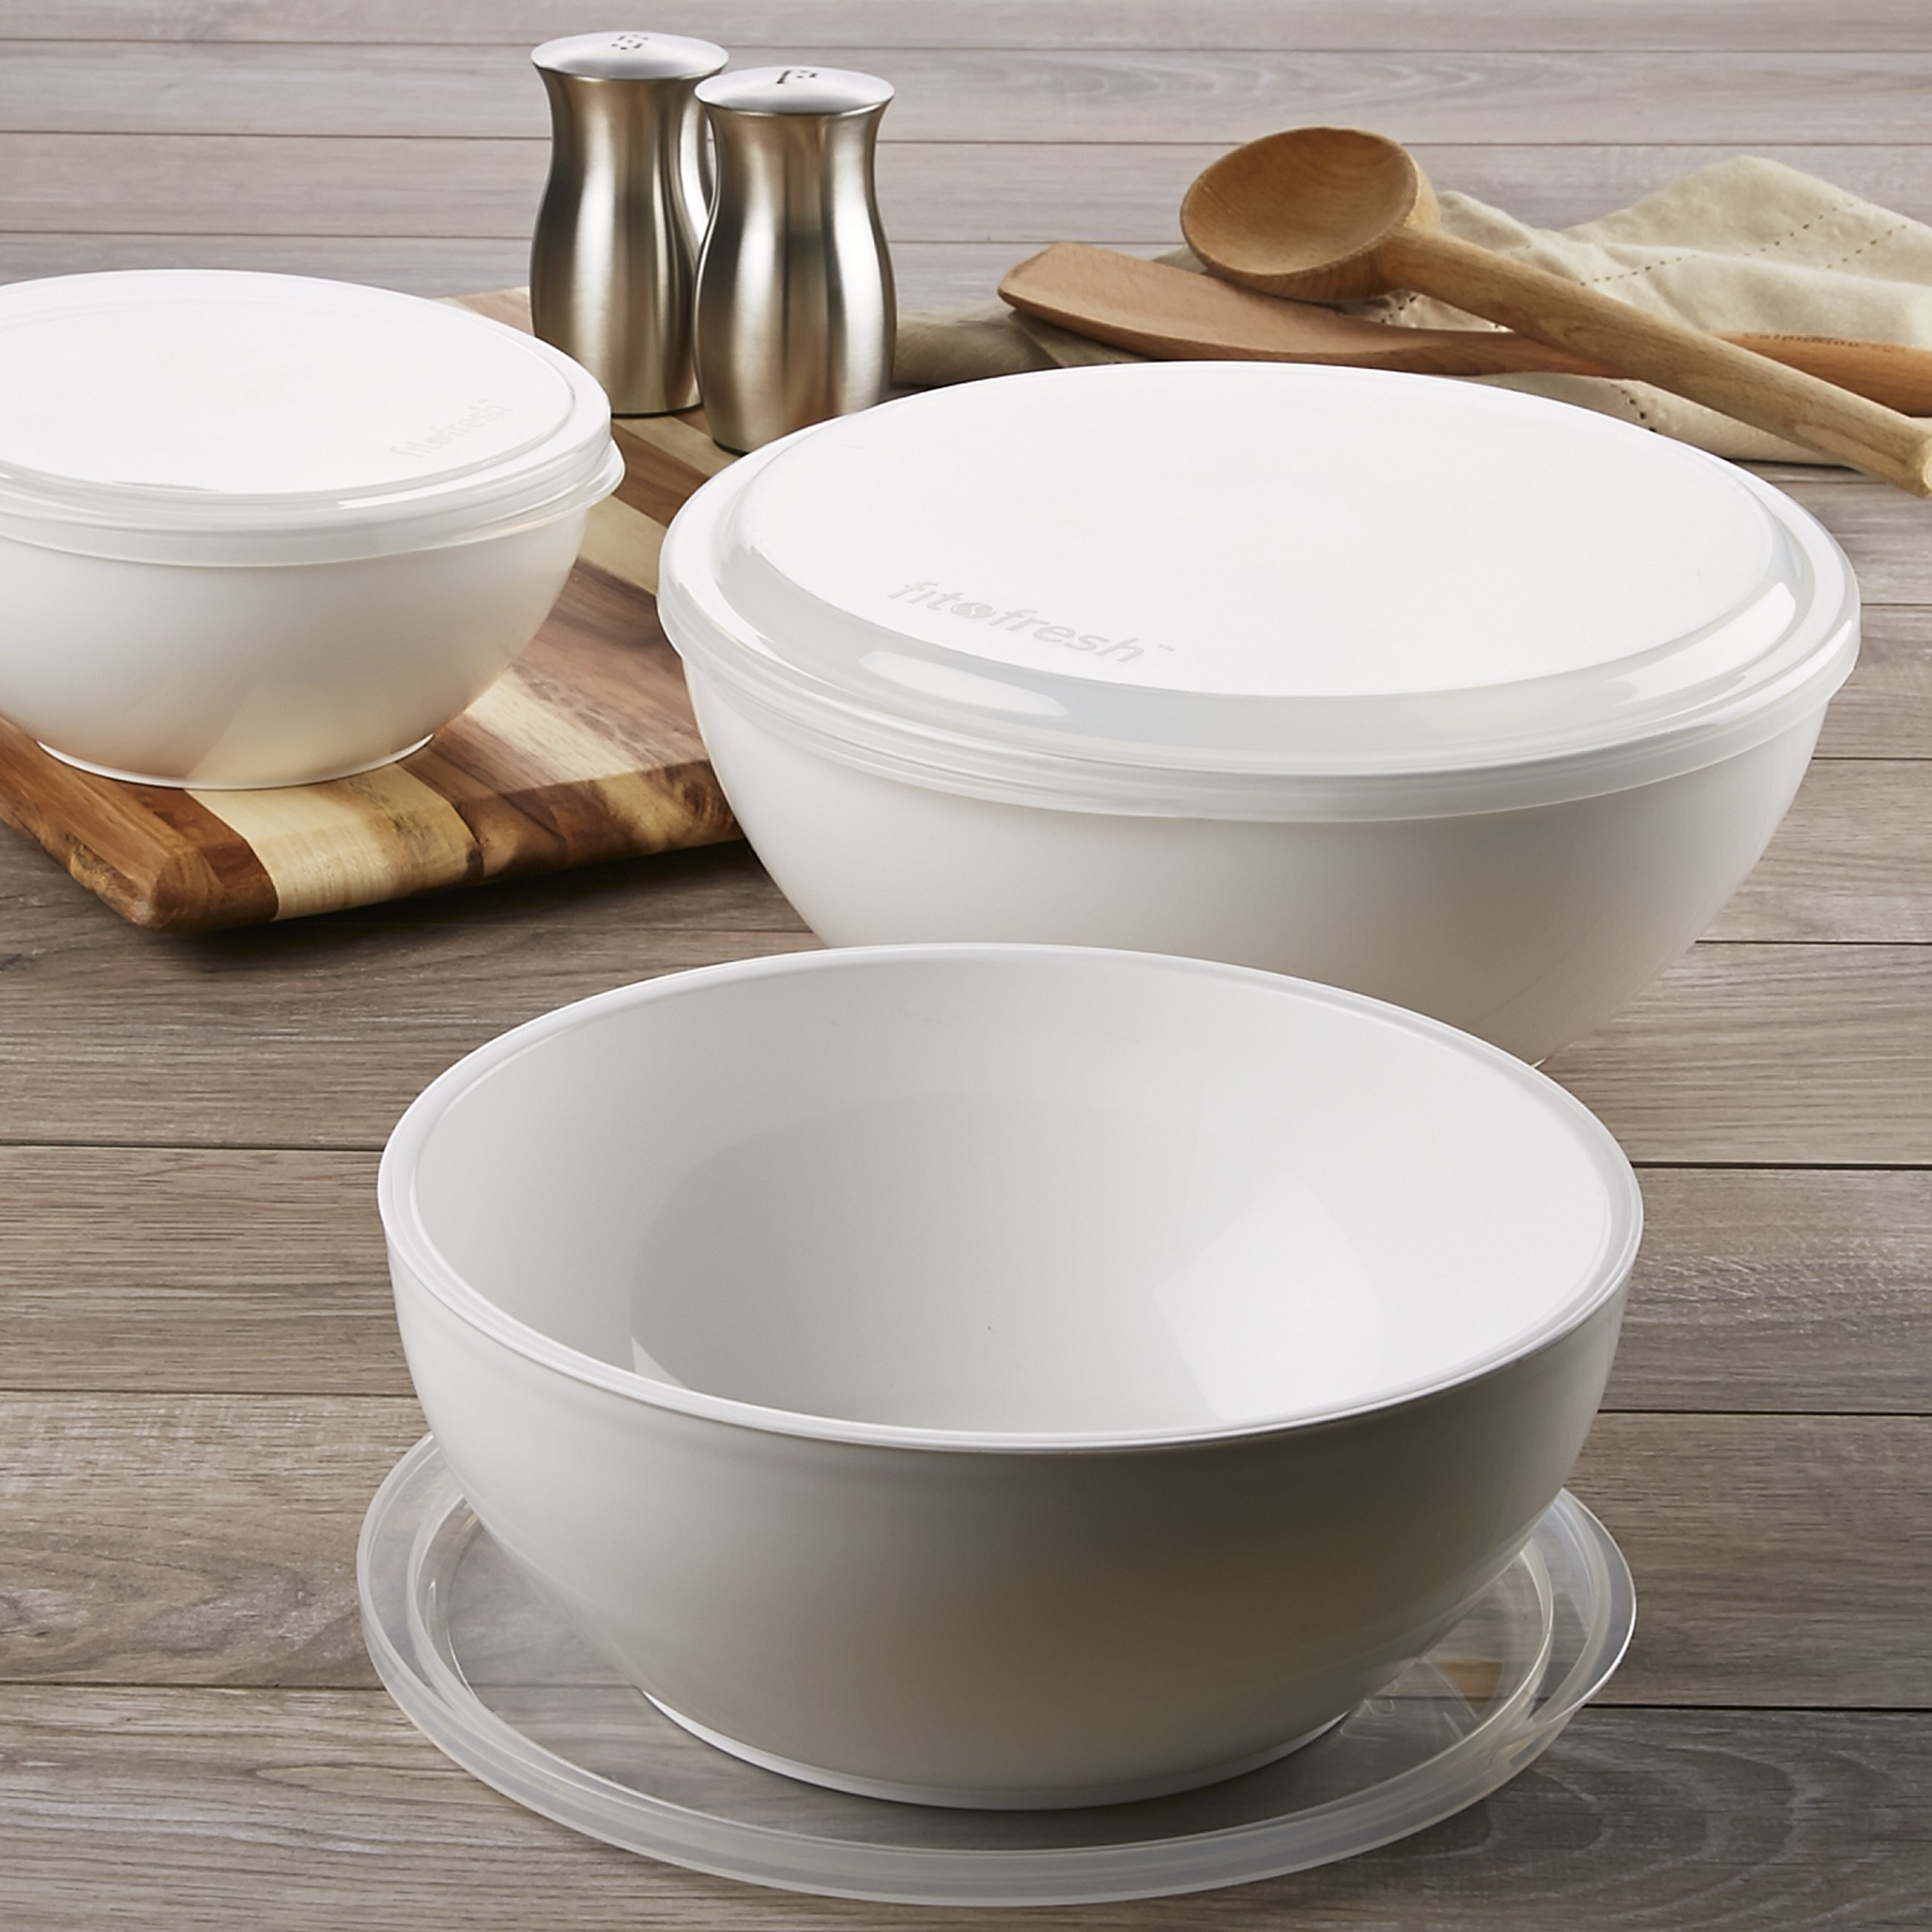 Fit & Fresh Chilled Serving Bowls, Set of 3 Freezable Bowls with Lids (3-Cup, 6.5-Cup, and 10-Cup Capacity), BPA-Free, Perfect for Party, Gathering, Food Storage